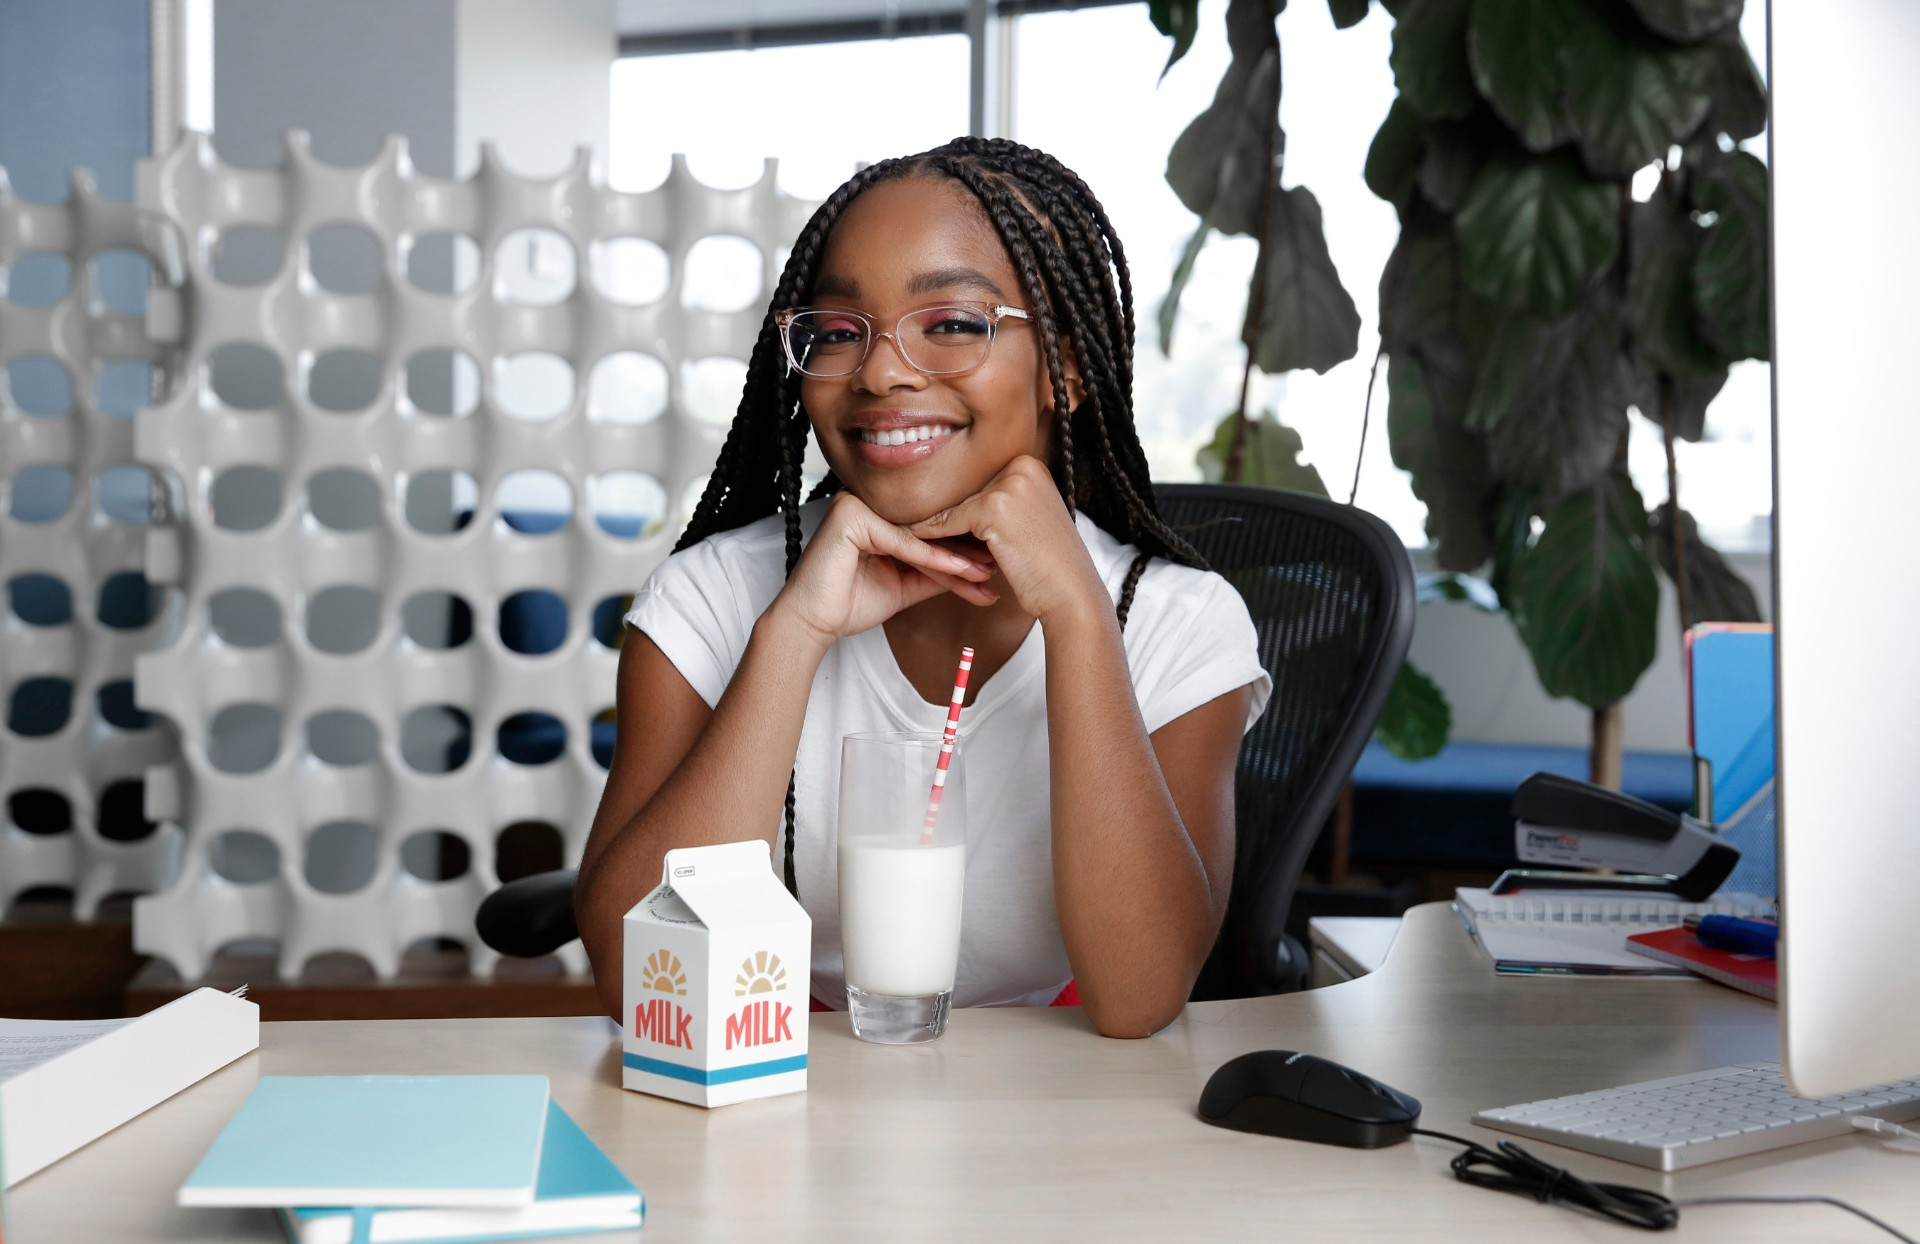 The creators of 'got milk?' kick off a new campaign with celebrated actress, TV/Film star and Hollywood's youngest executive producer Marsai Martin on Thursday, September 10, 2020. Martin went behind-the-scenes on the set of Glass Half Full News, to serve as creative advisor, AKA Boss Lady. The episodic internet show is the brainchild of the California Milk Processor Board and delivers positive and fun news seen through the ambitious lens of a kid's perspective. (Photo by Rachel Murray Framingheddu for CMPB/Getty Images)